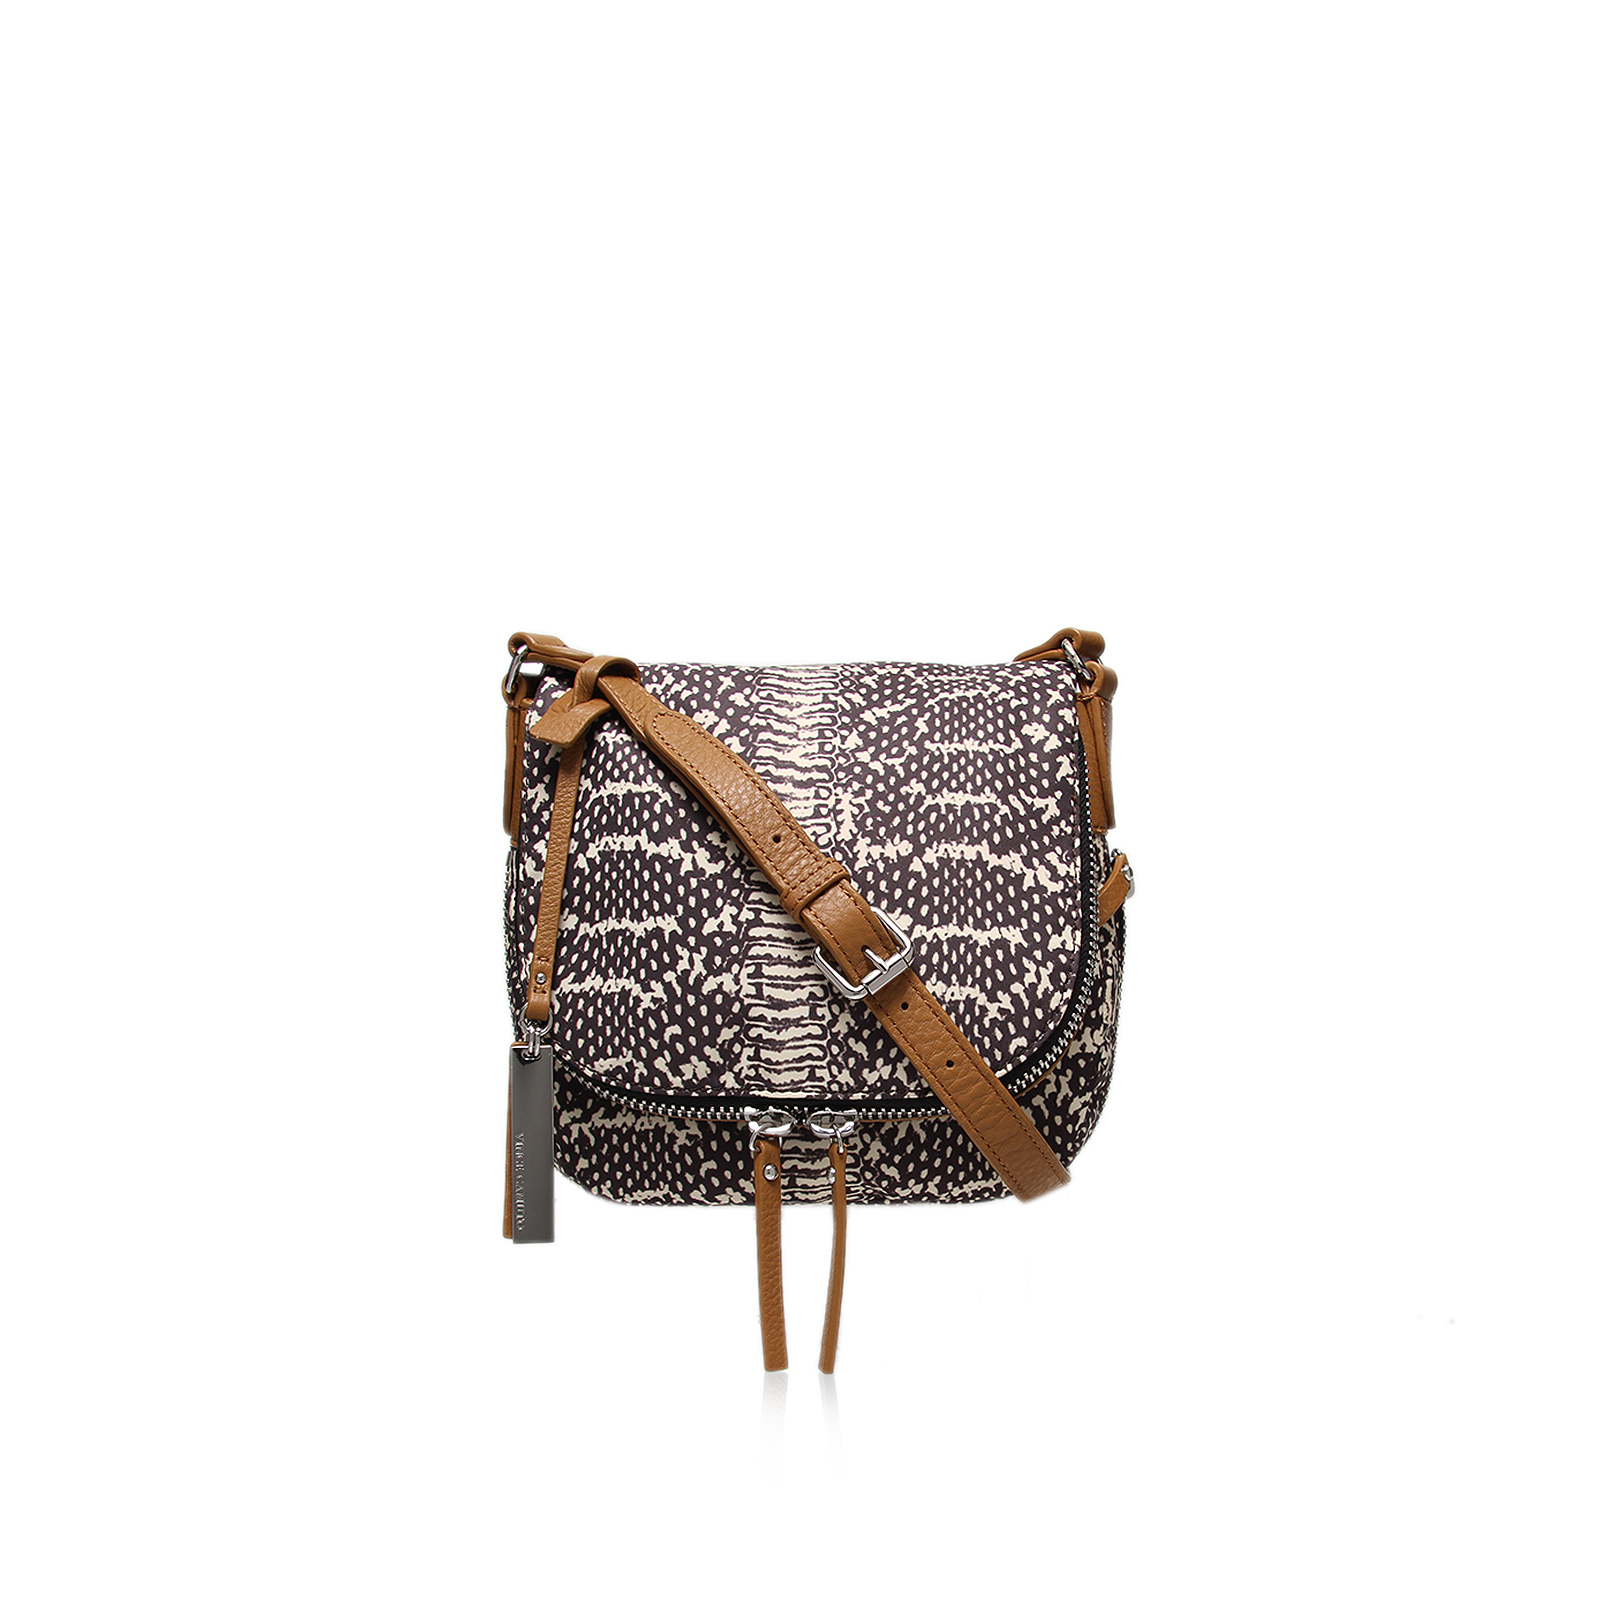 BAILY NYLON CROSSBODY